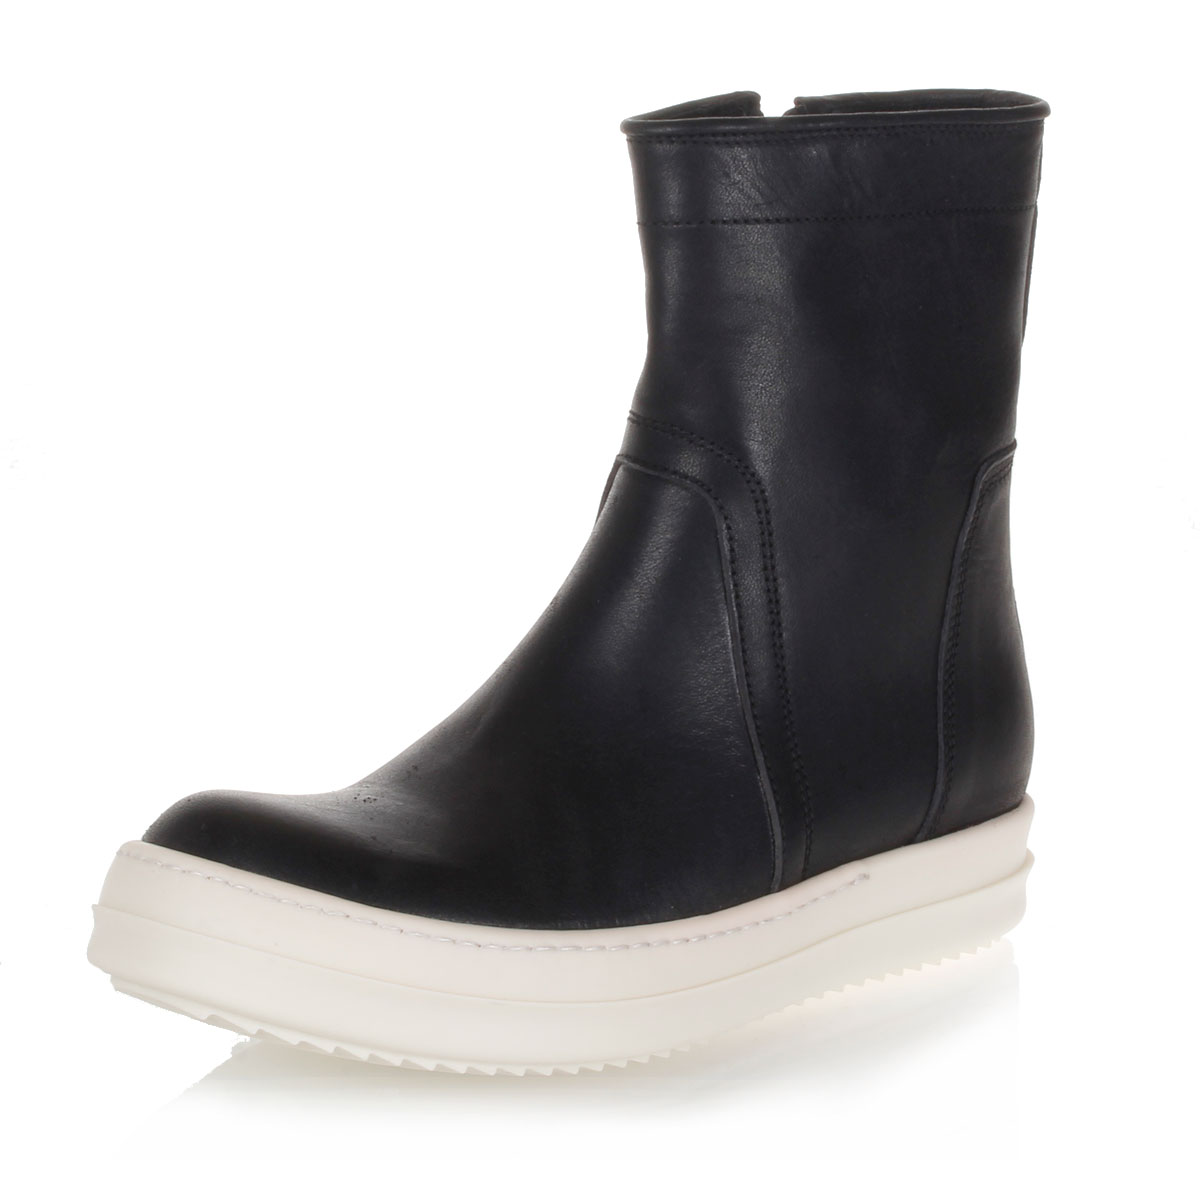 Rick Owens Uomo Stivaletto VICIOUS in pelle - Glamood Outlet 3dff4339747